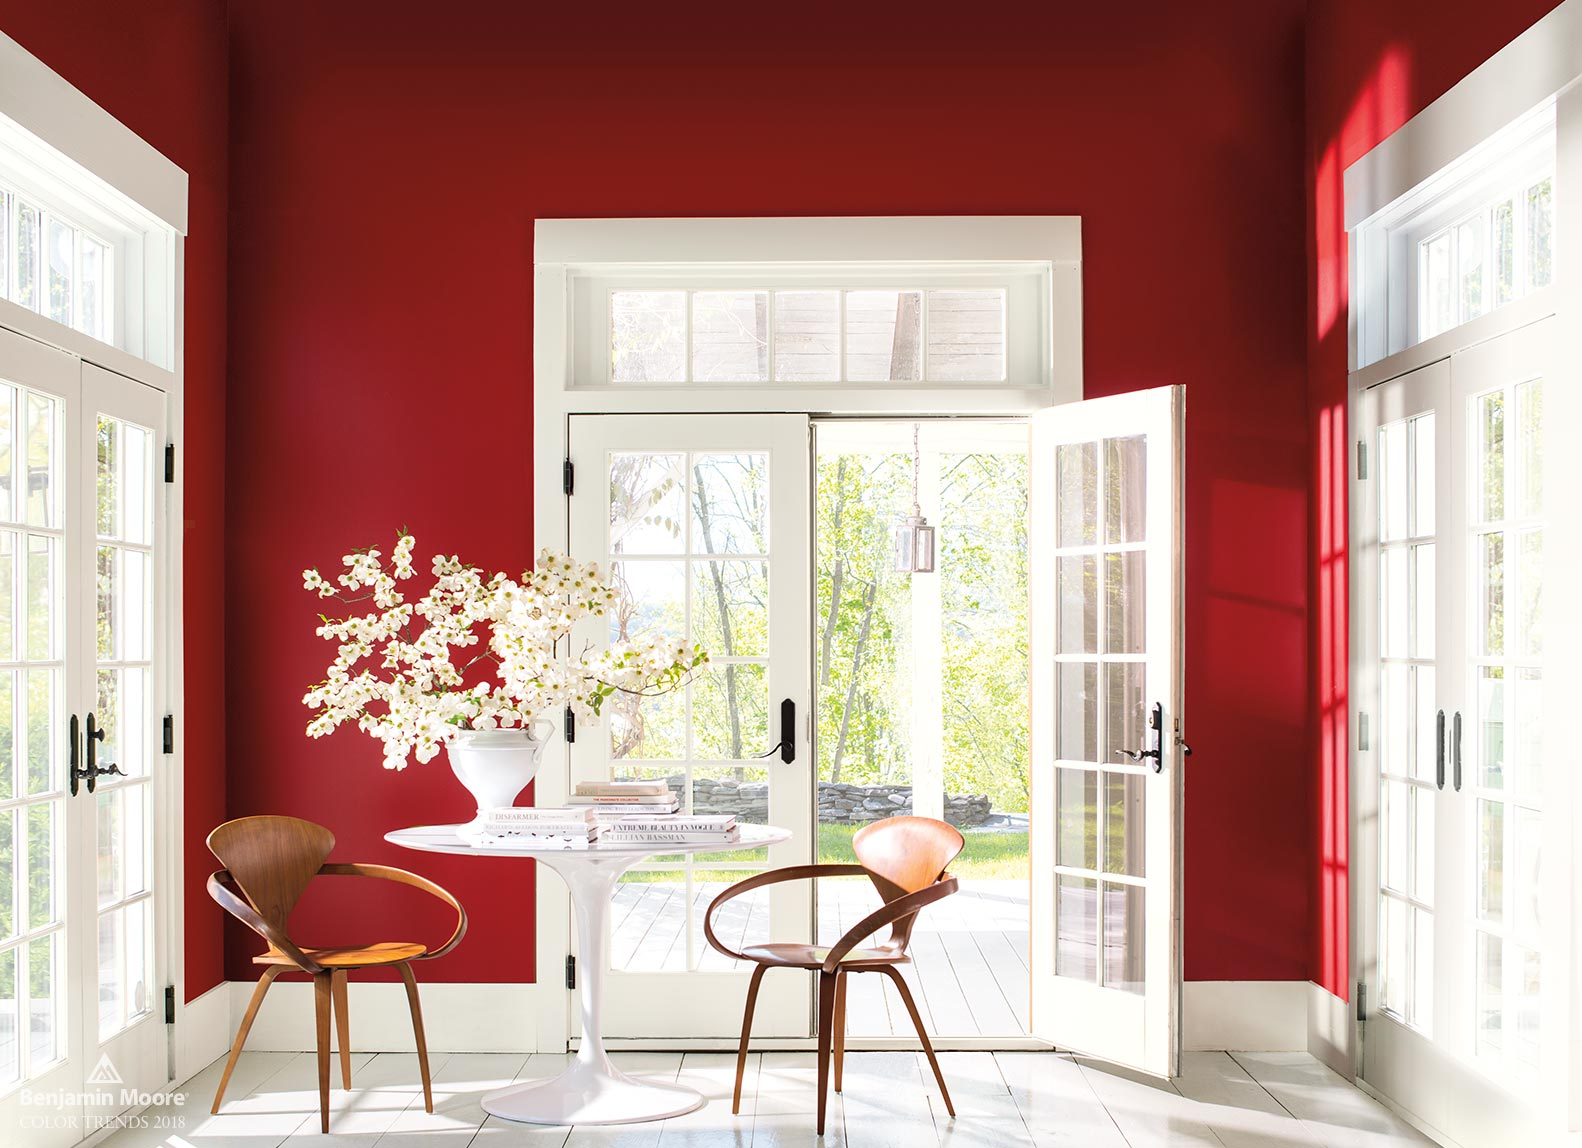 Benjamin Moore 2018 Color of the Year, Caliente AF-290